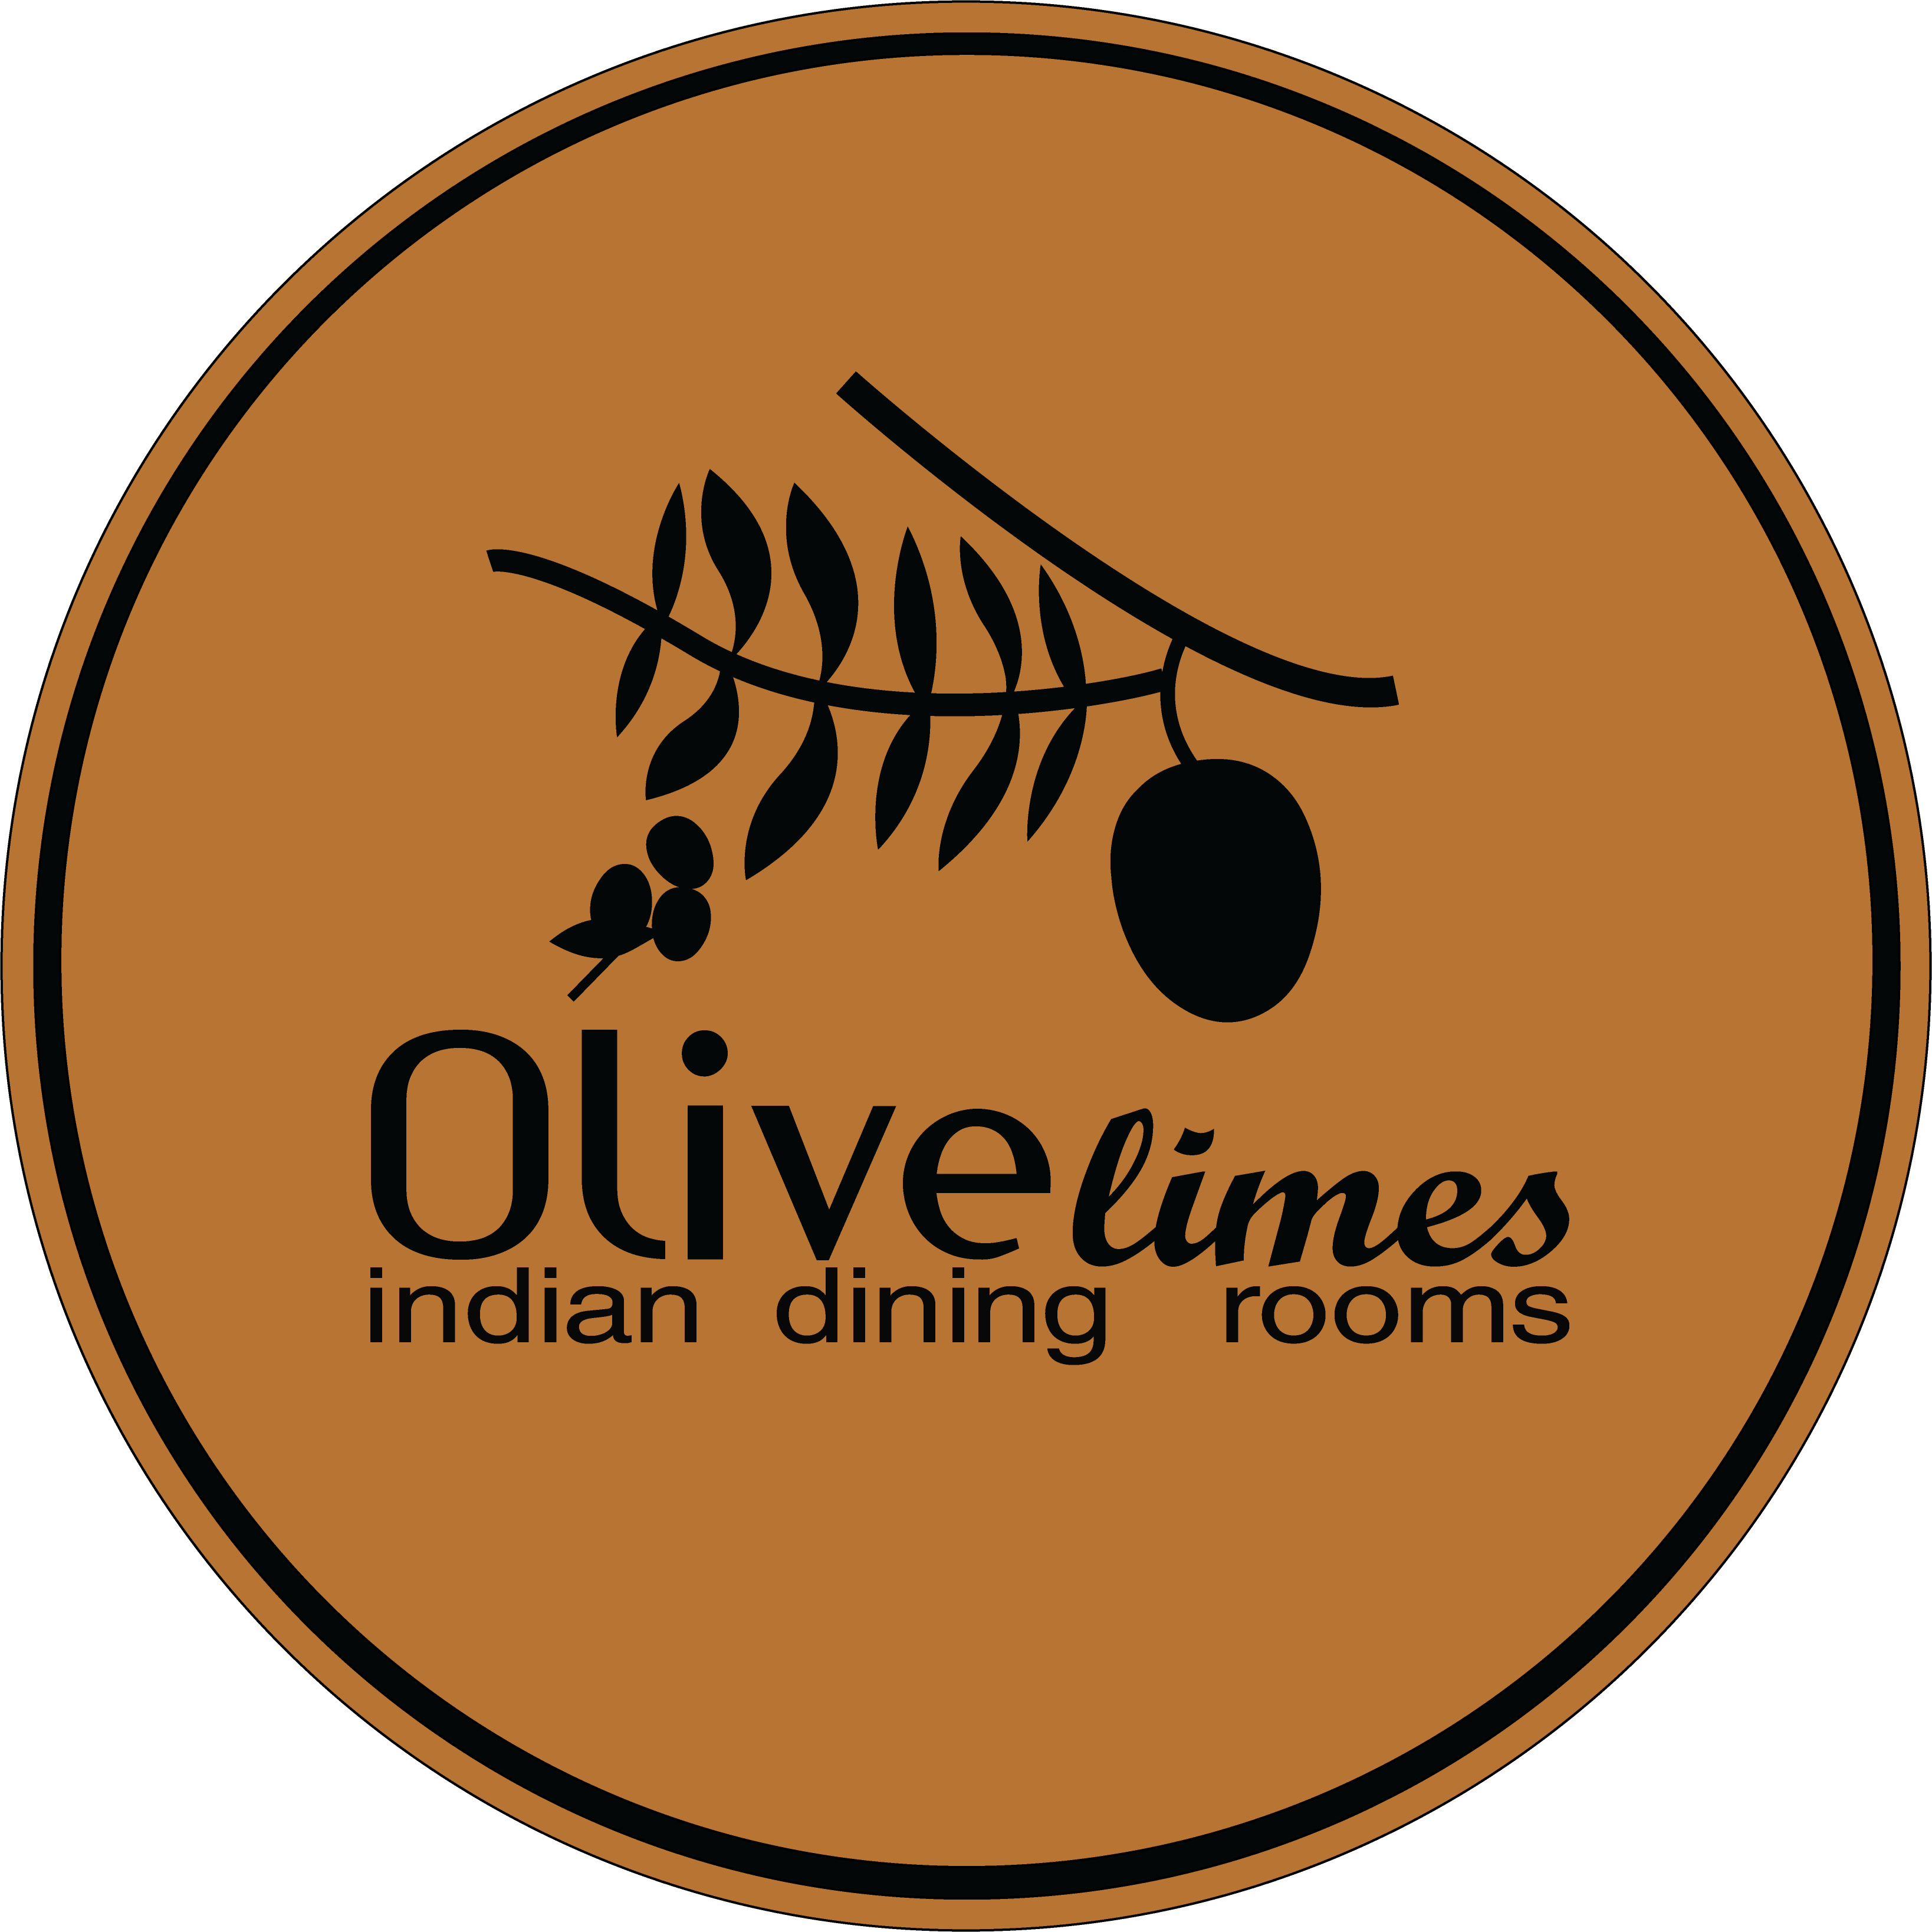 Olive Limes